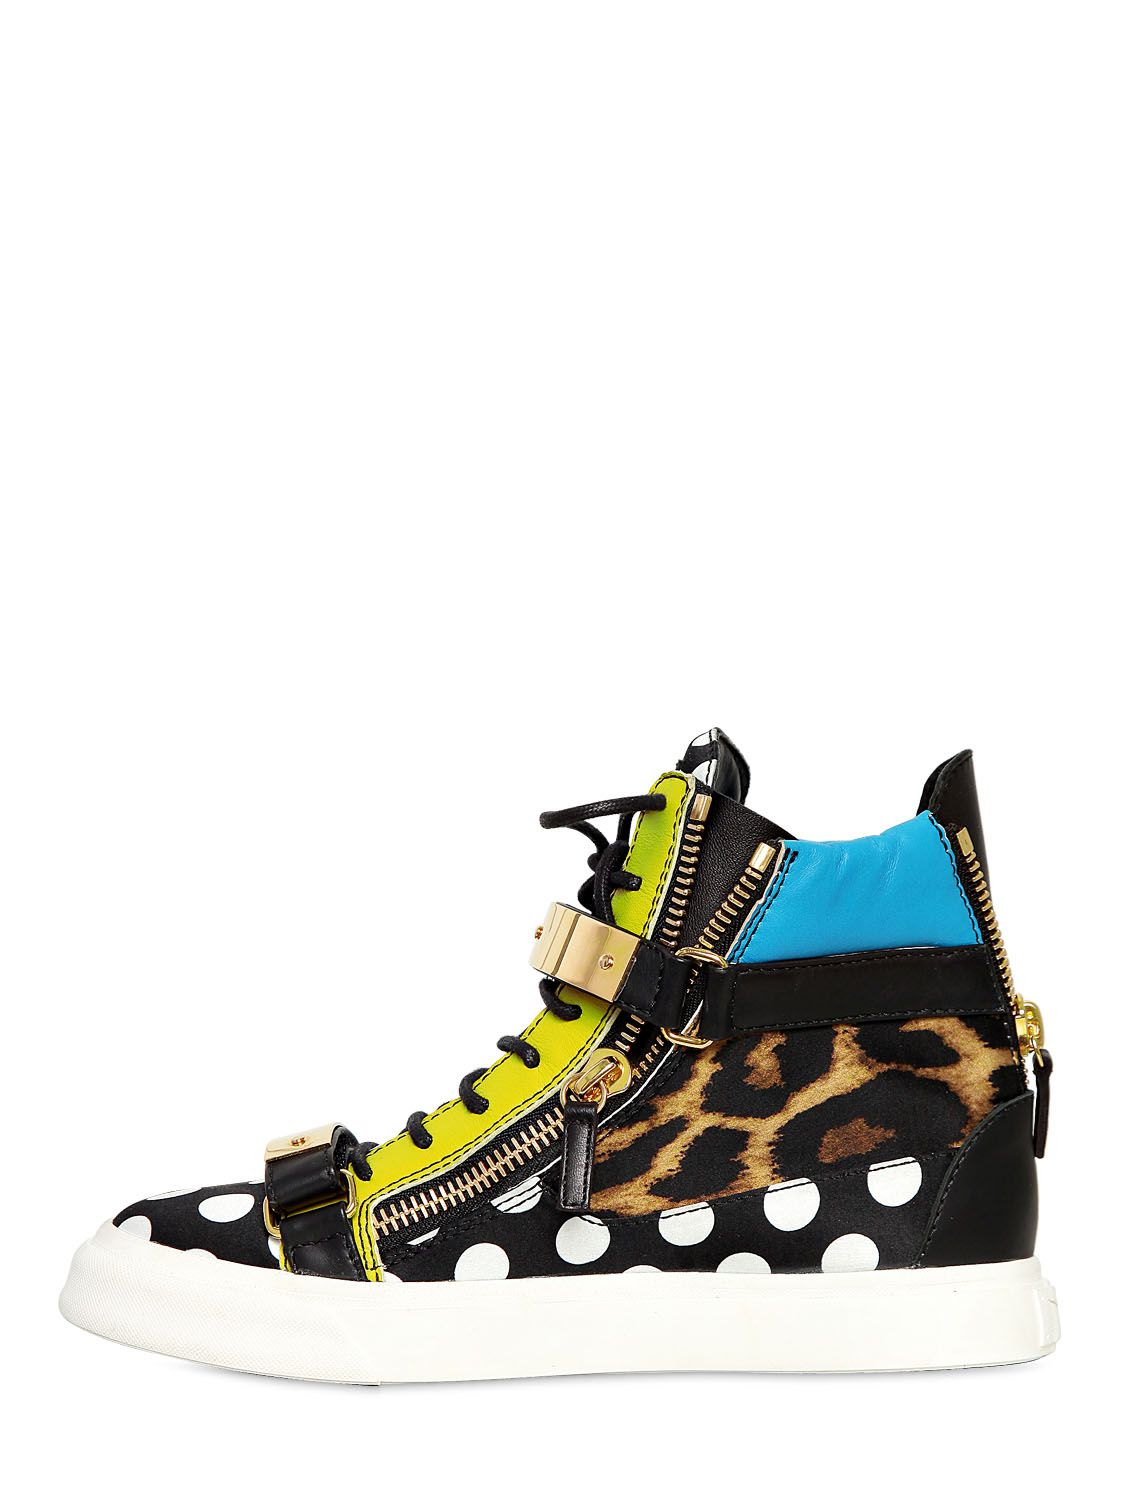 Giuseppe Zanotti 20mm Satin and Leather Sneakers